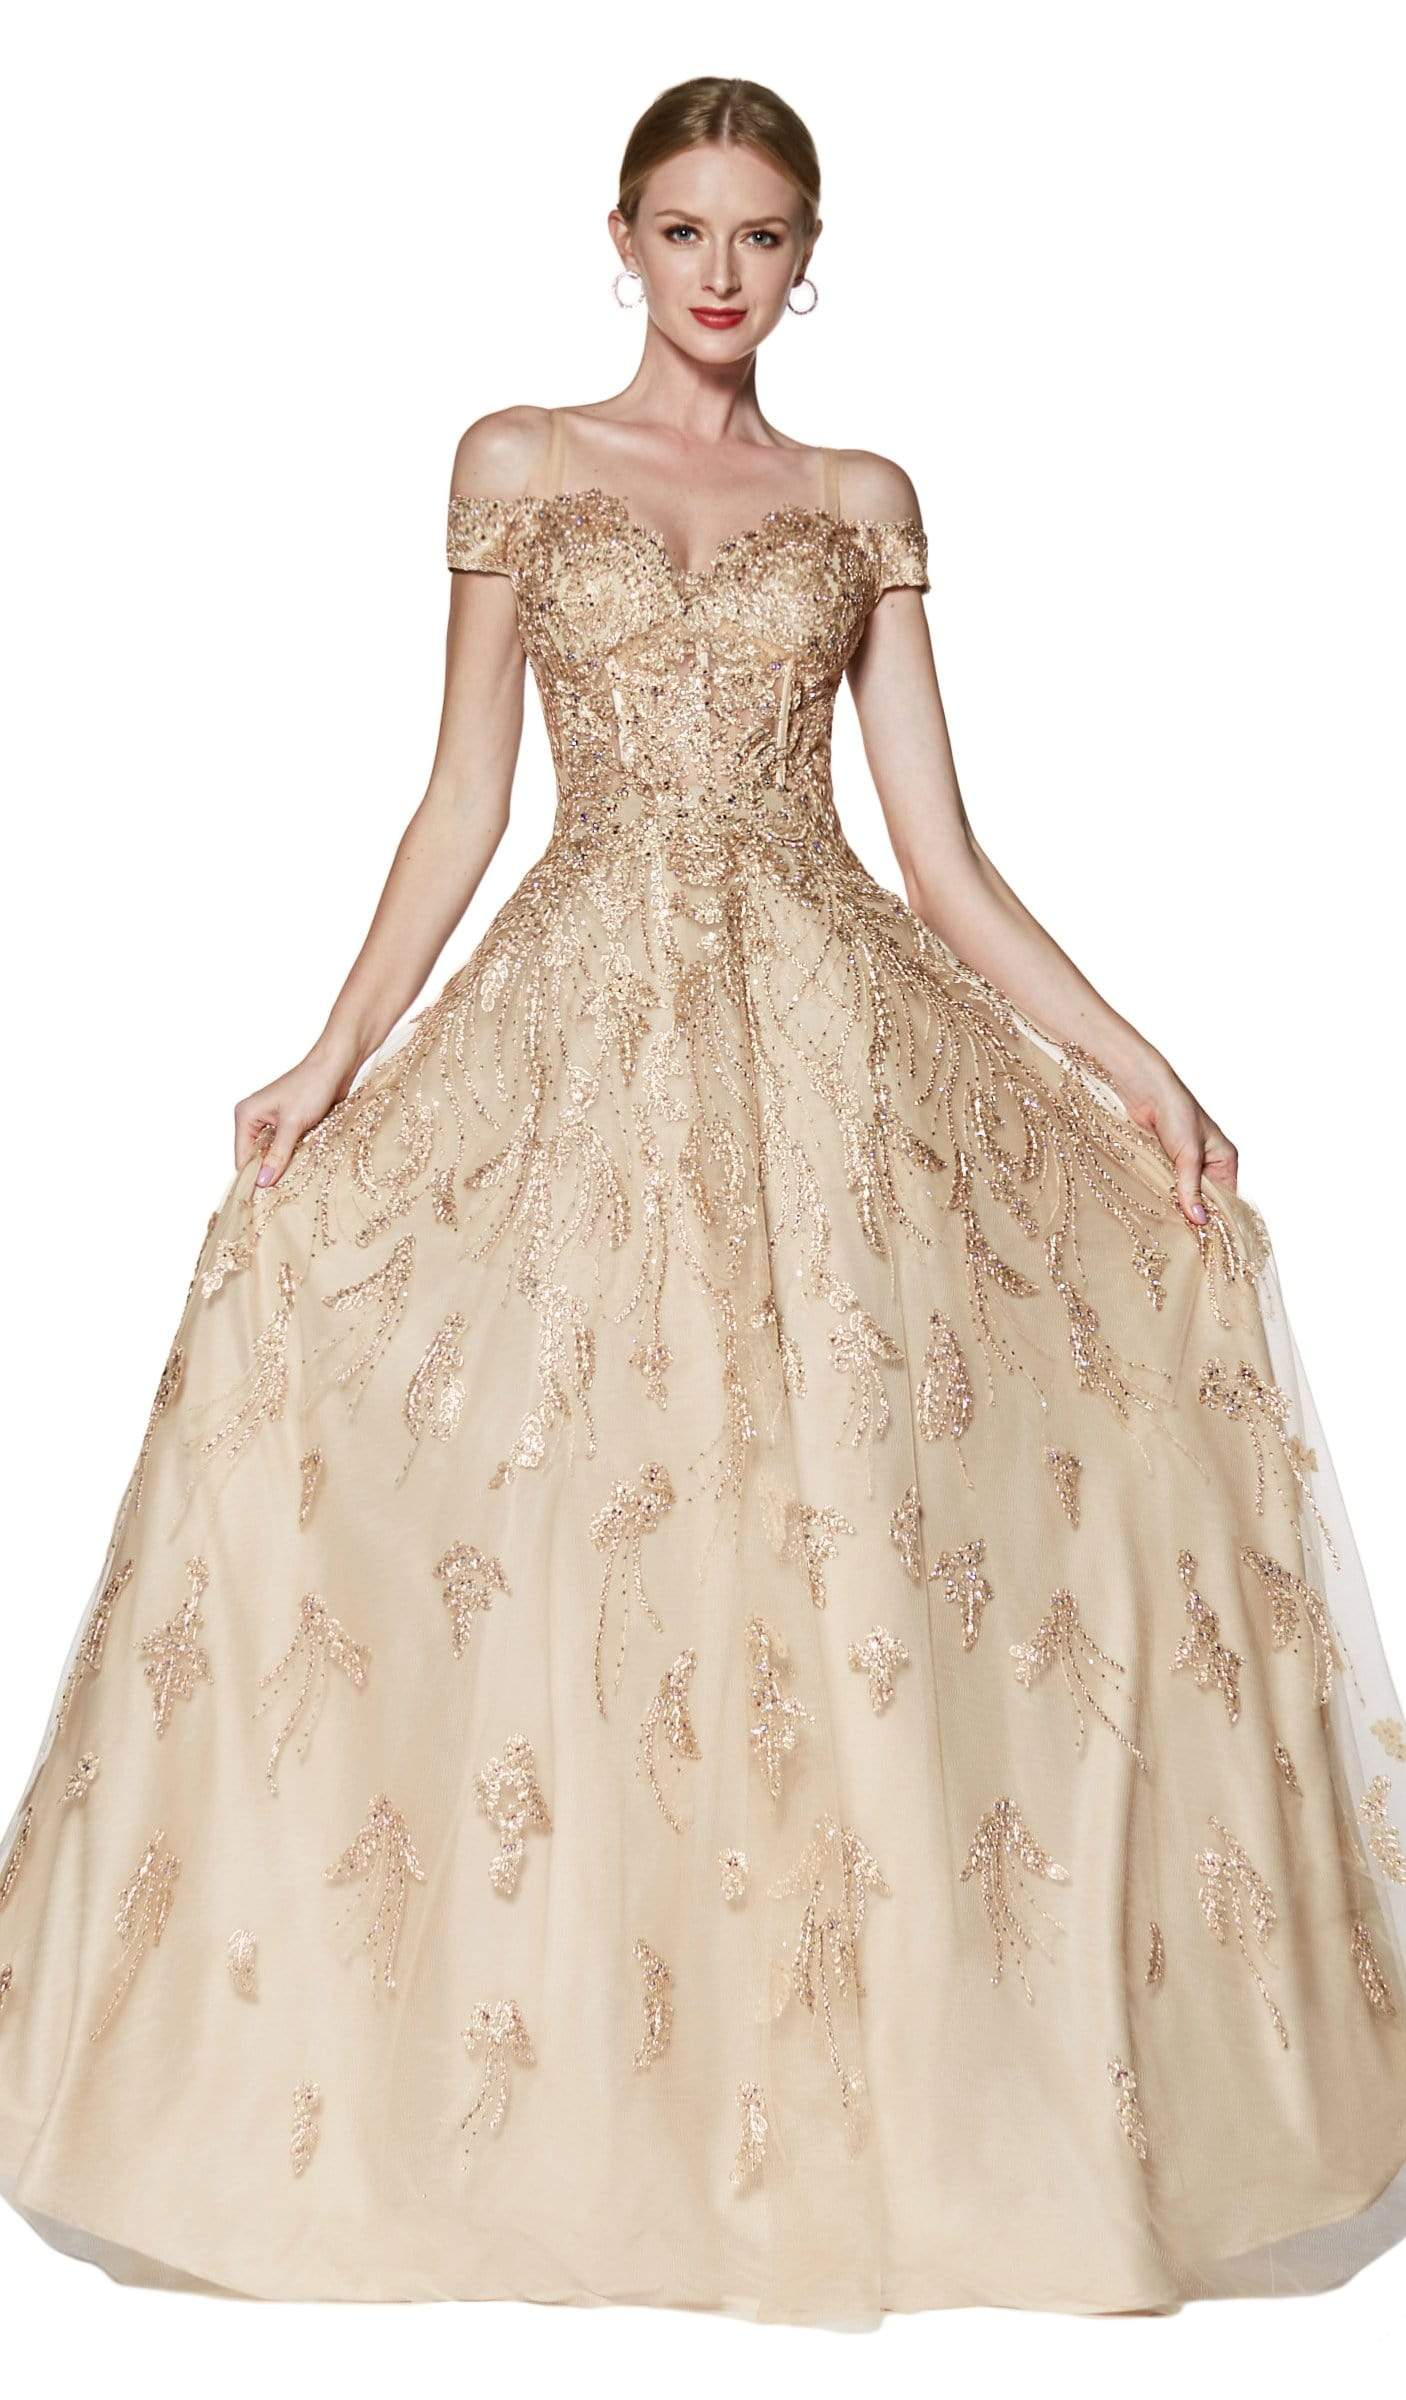 Cinderella Divine - KV1034 Beaded Lace Appliqued Ballgown In Gold